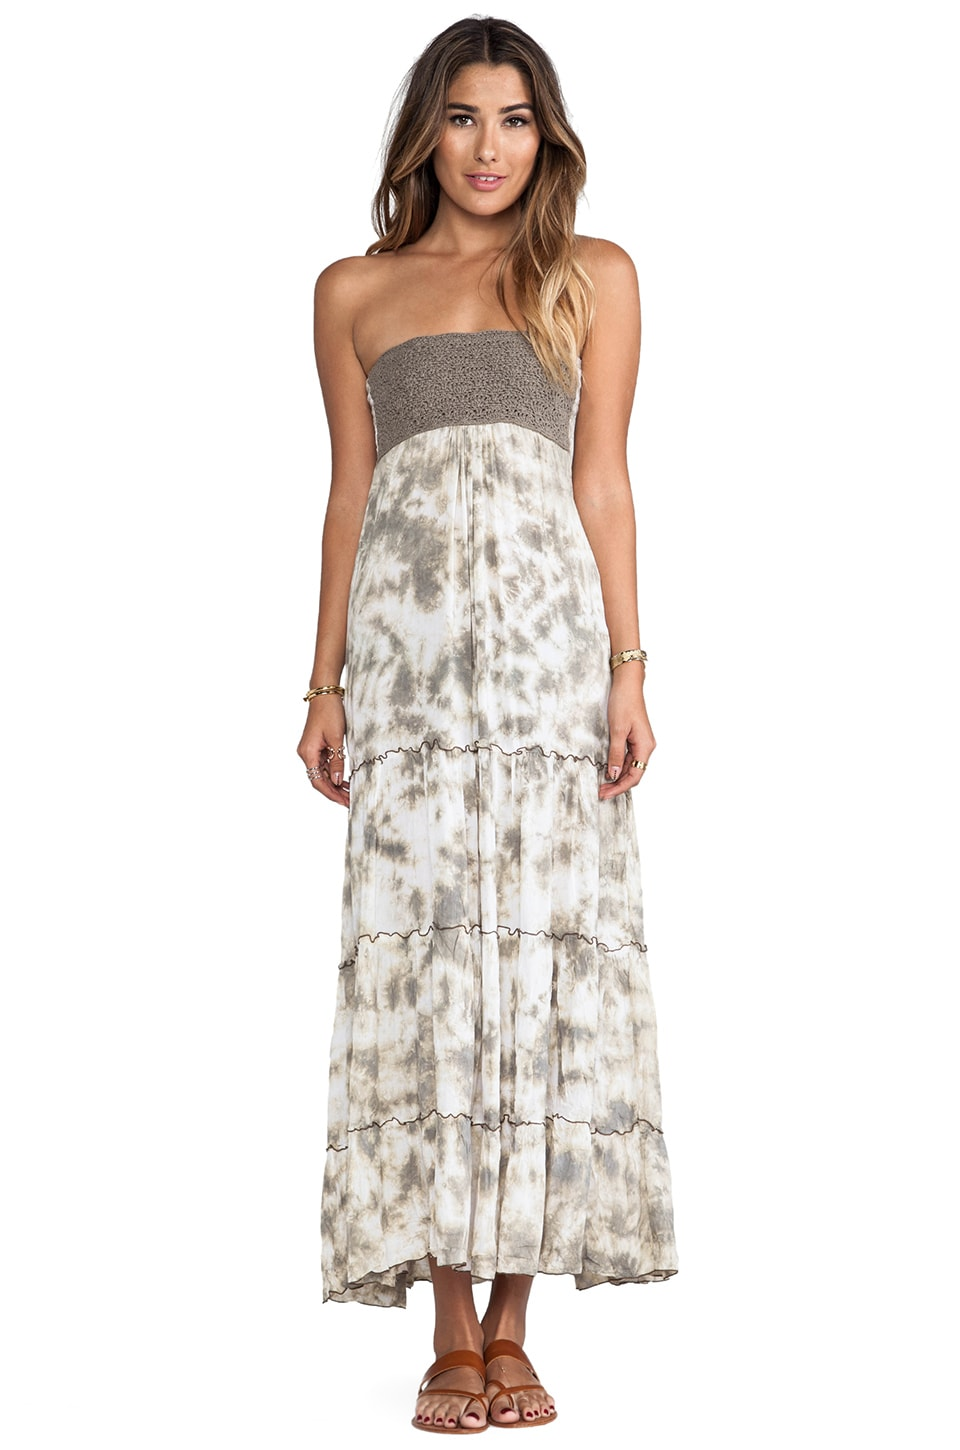 Tiare Hawaii Long Crochet Tube Dress in White Stone